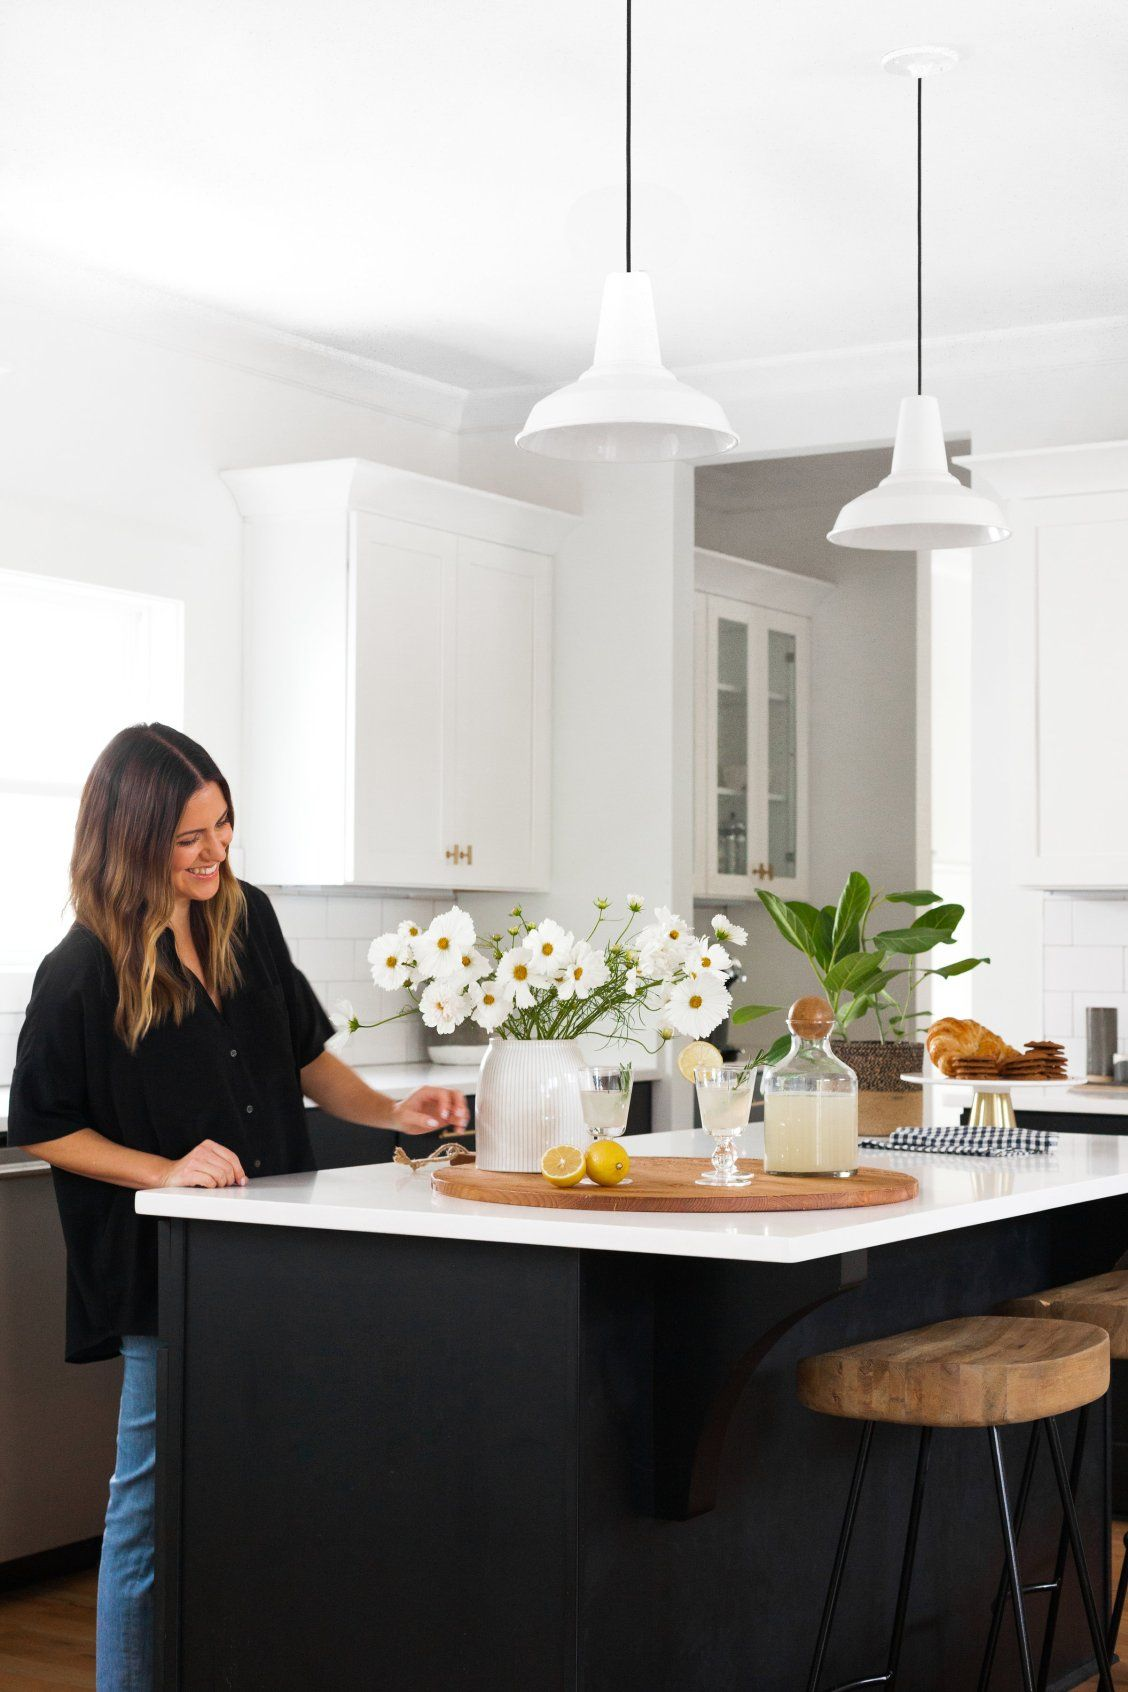 Schoolhouse Spaces: The Wendell Home | Spaces, Kitchens and House